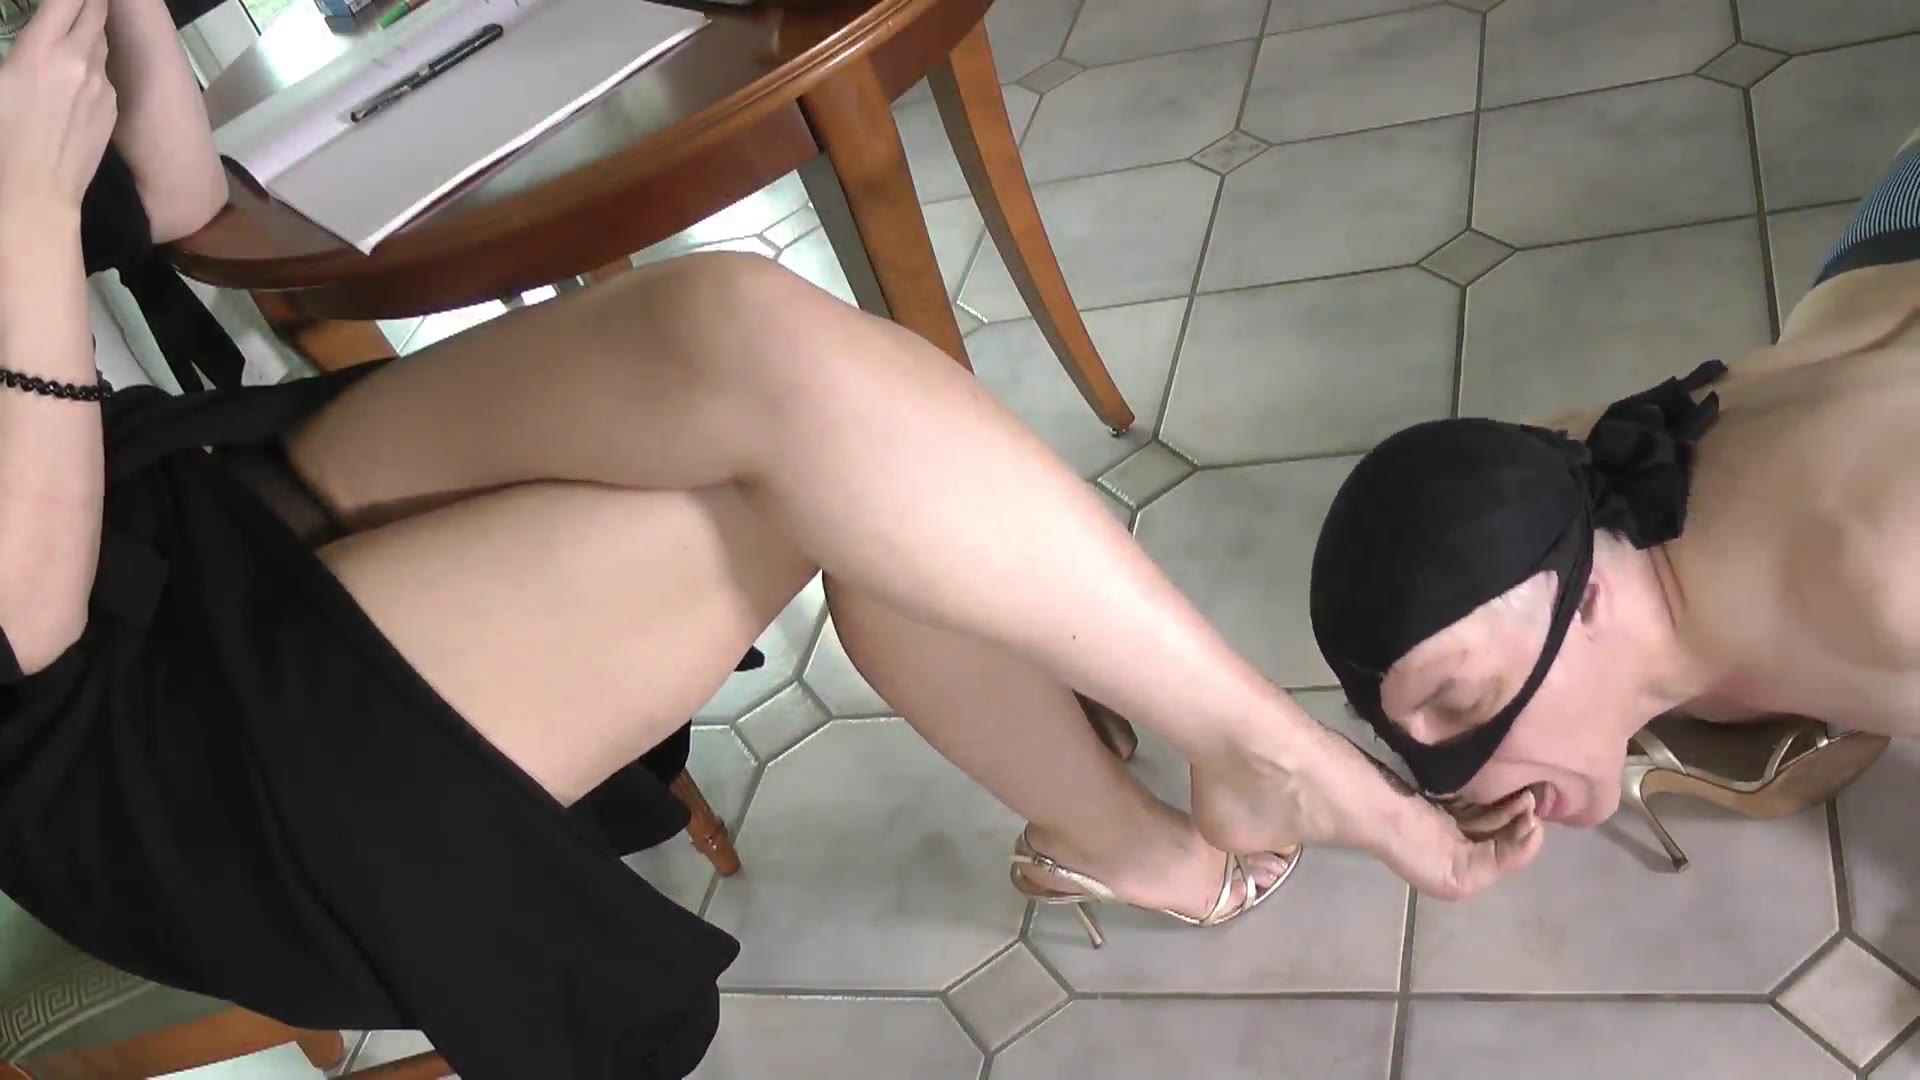 Beautiful feet and beautiful shoes play with men, and beautiful feet keep coming and going in and out of men's mouths